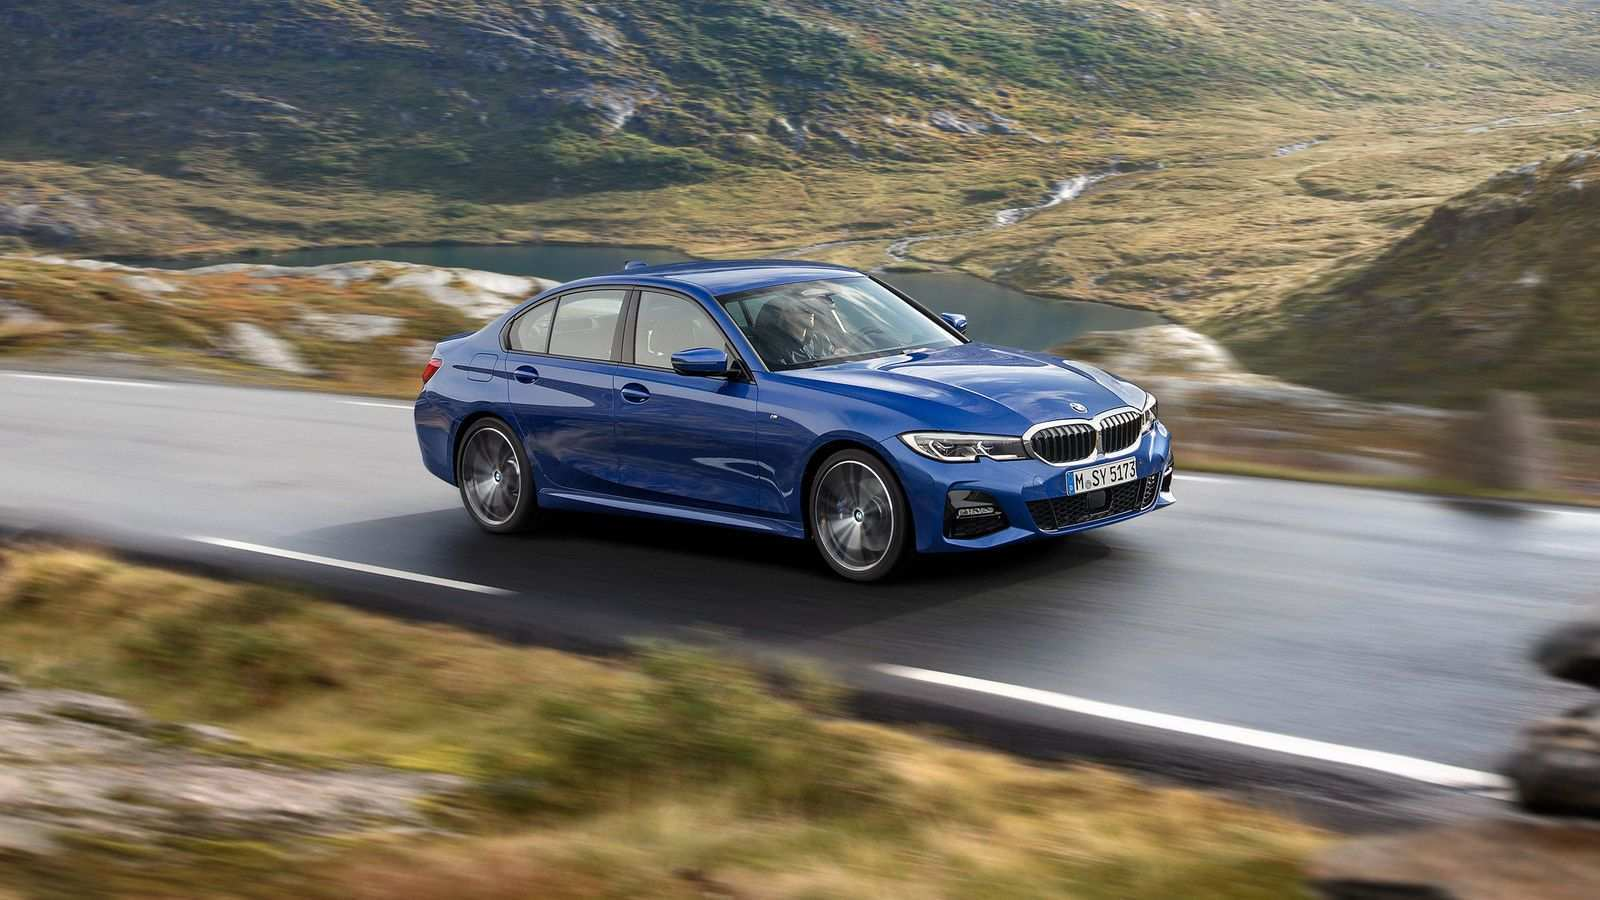 69 All New 2020 BMW 3 Series Edrive Phev Prices